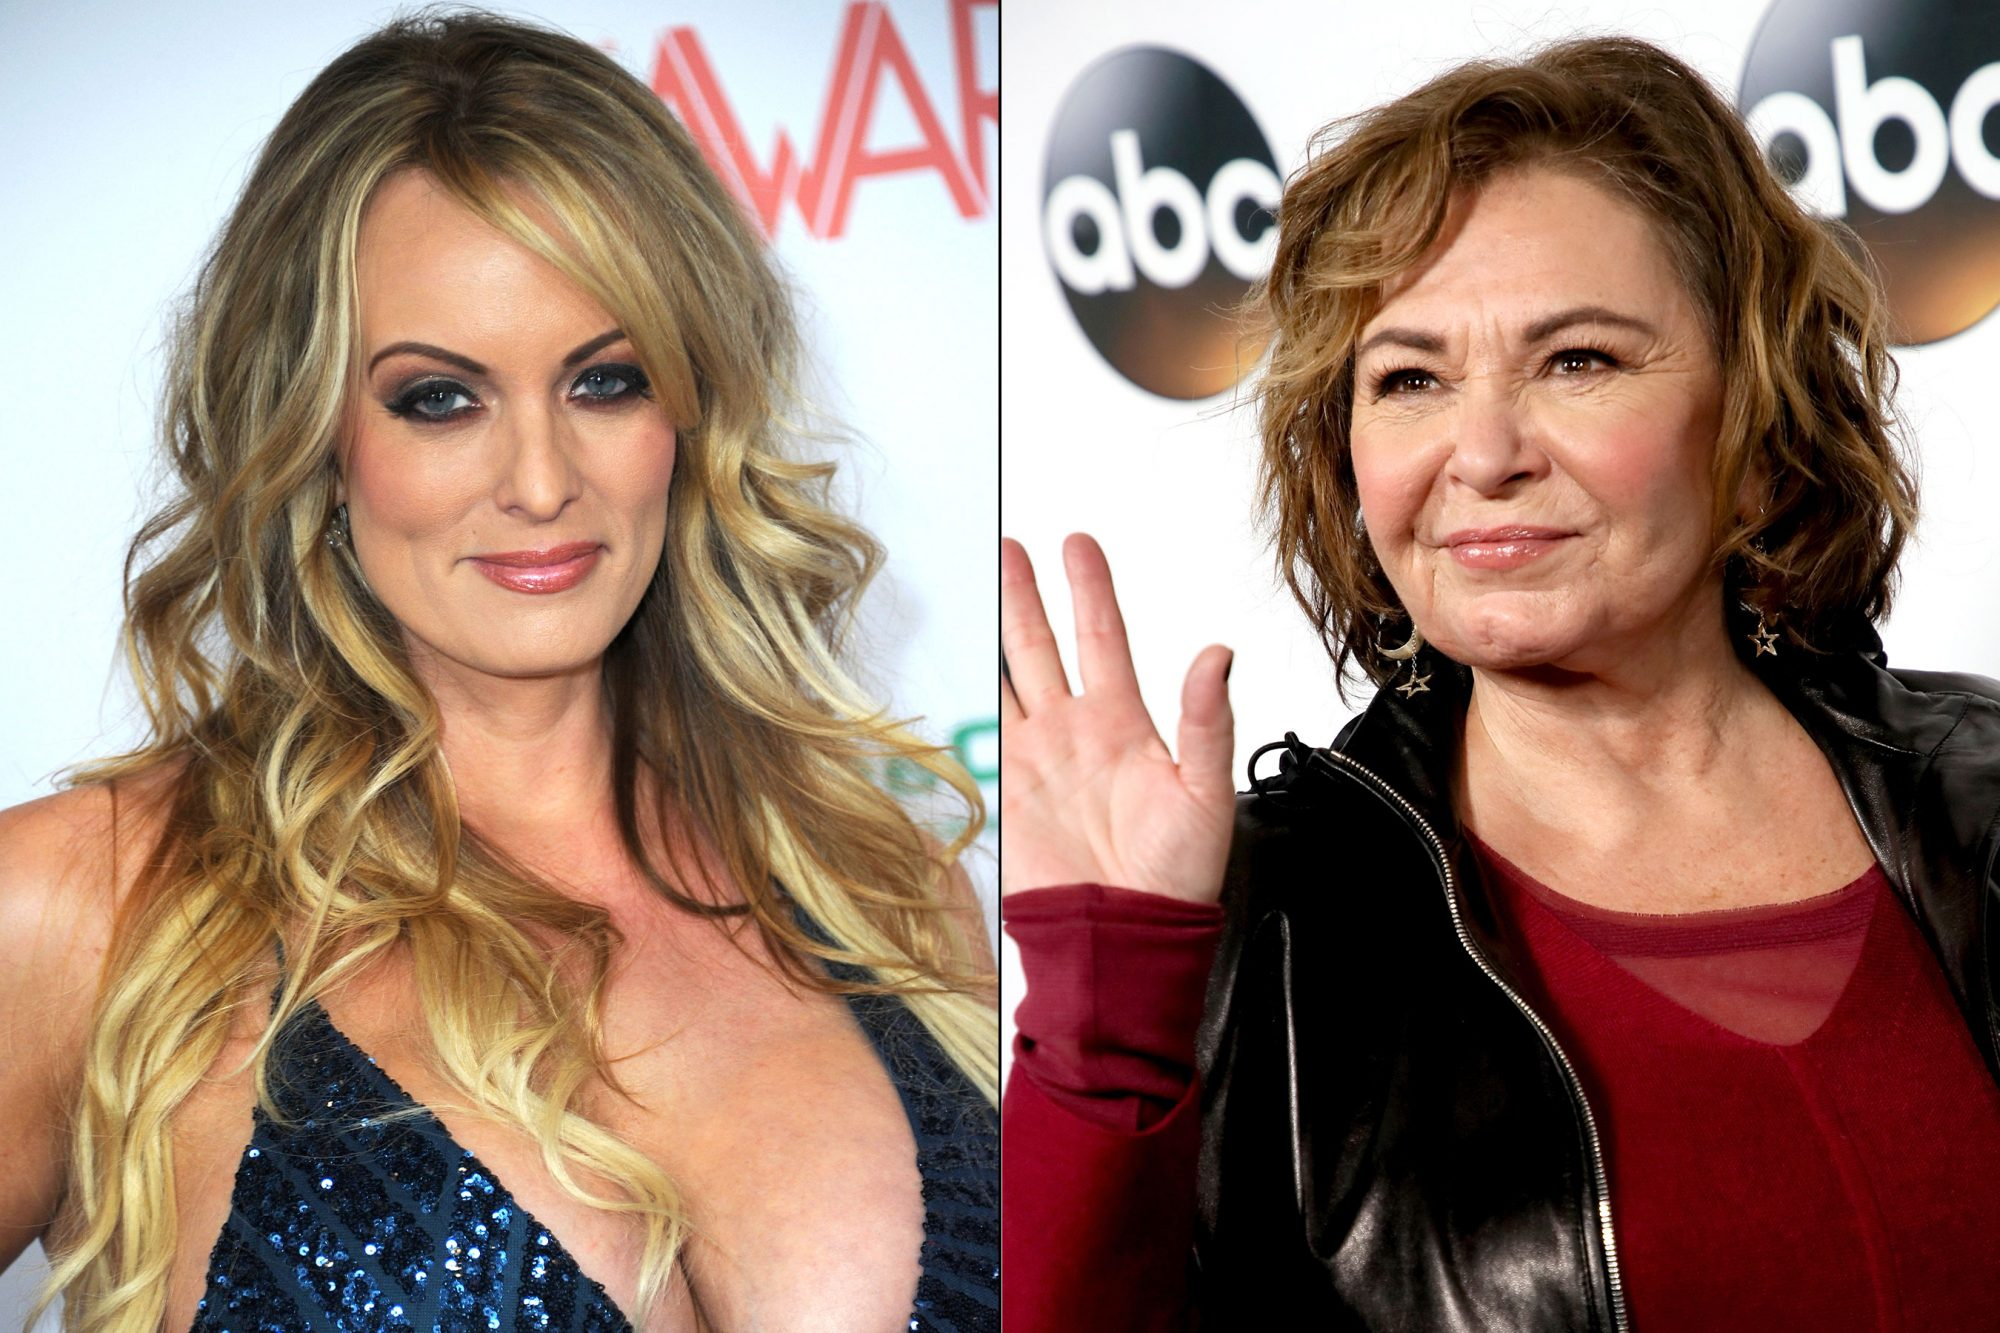 Roseanne gets into feud with Stormy Daniels about anal sex